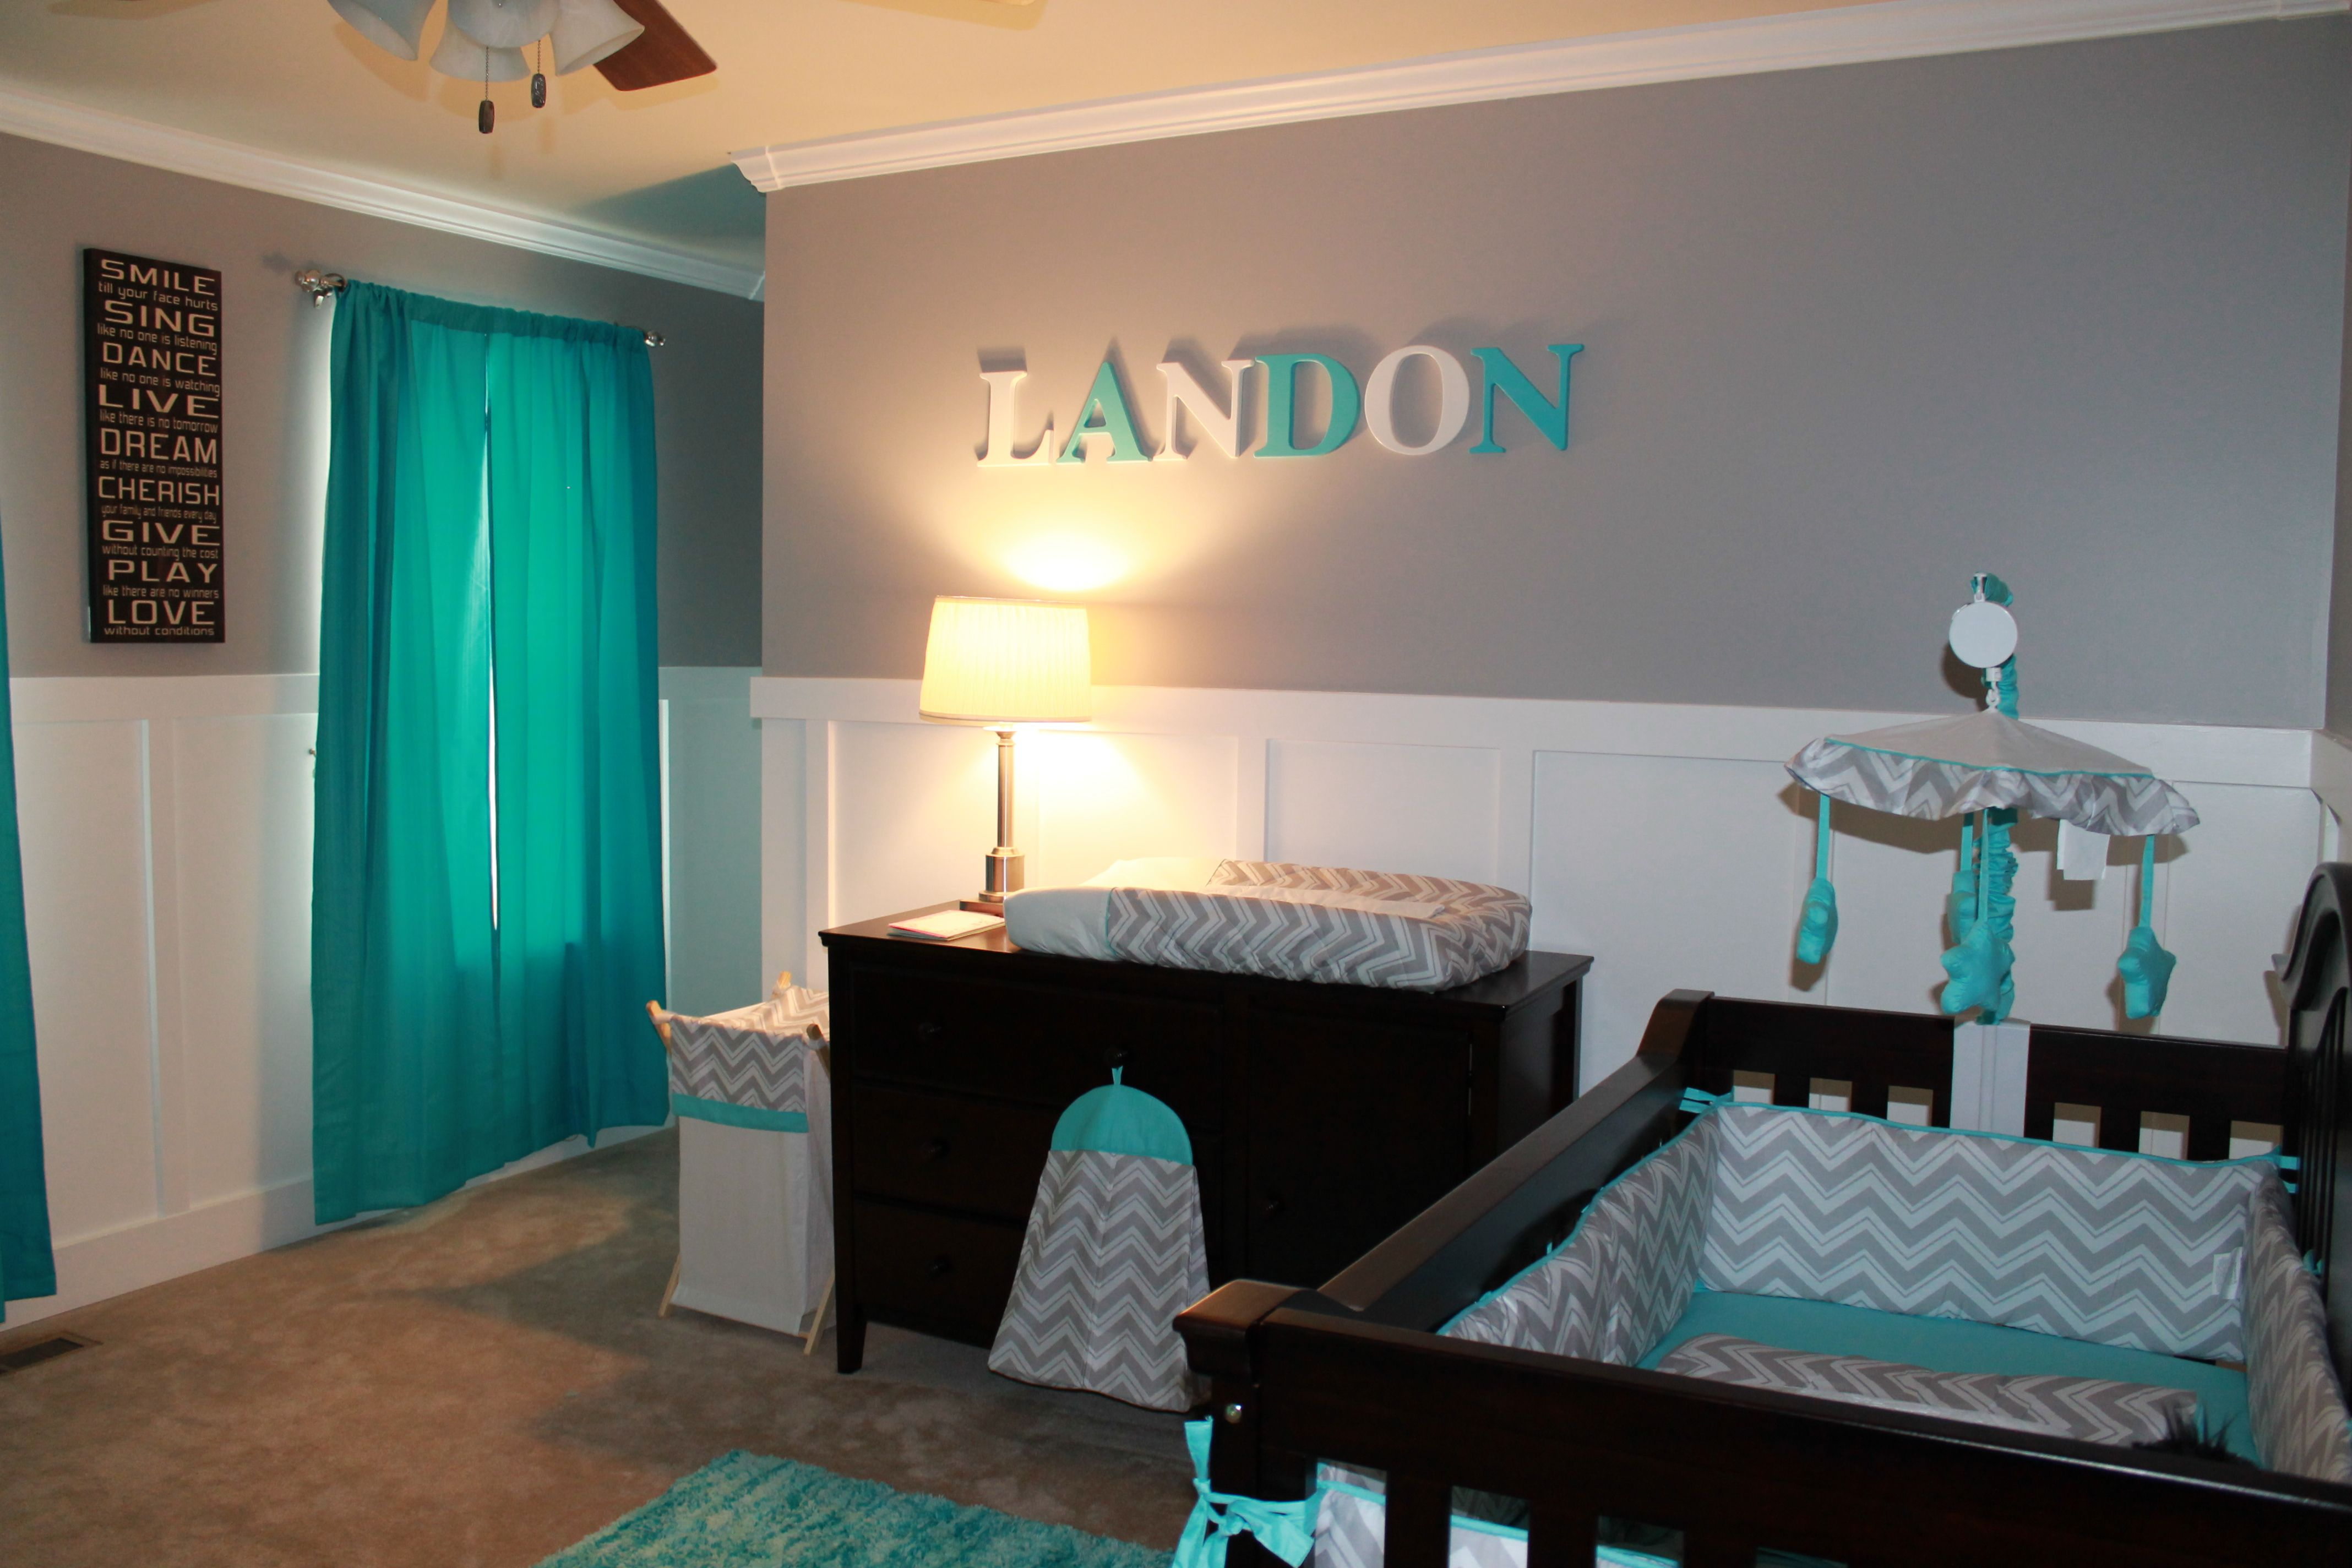 Landon S Room Simple Turquoise Blue Amp Green Grey And White Colors With A Chevron Theme Stars